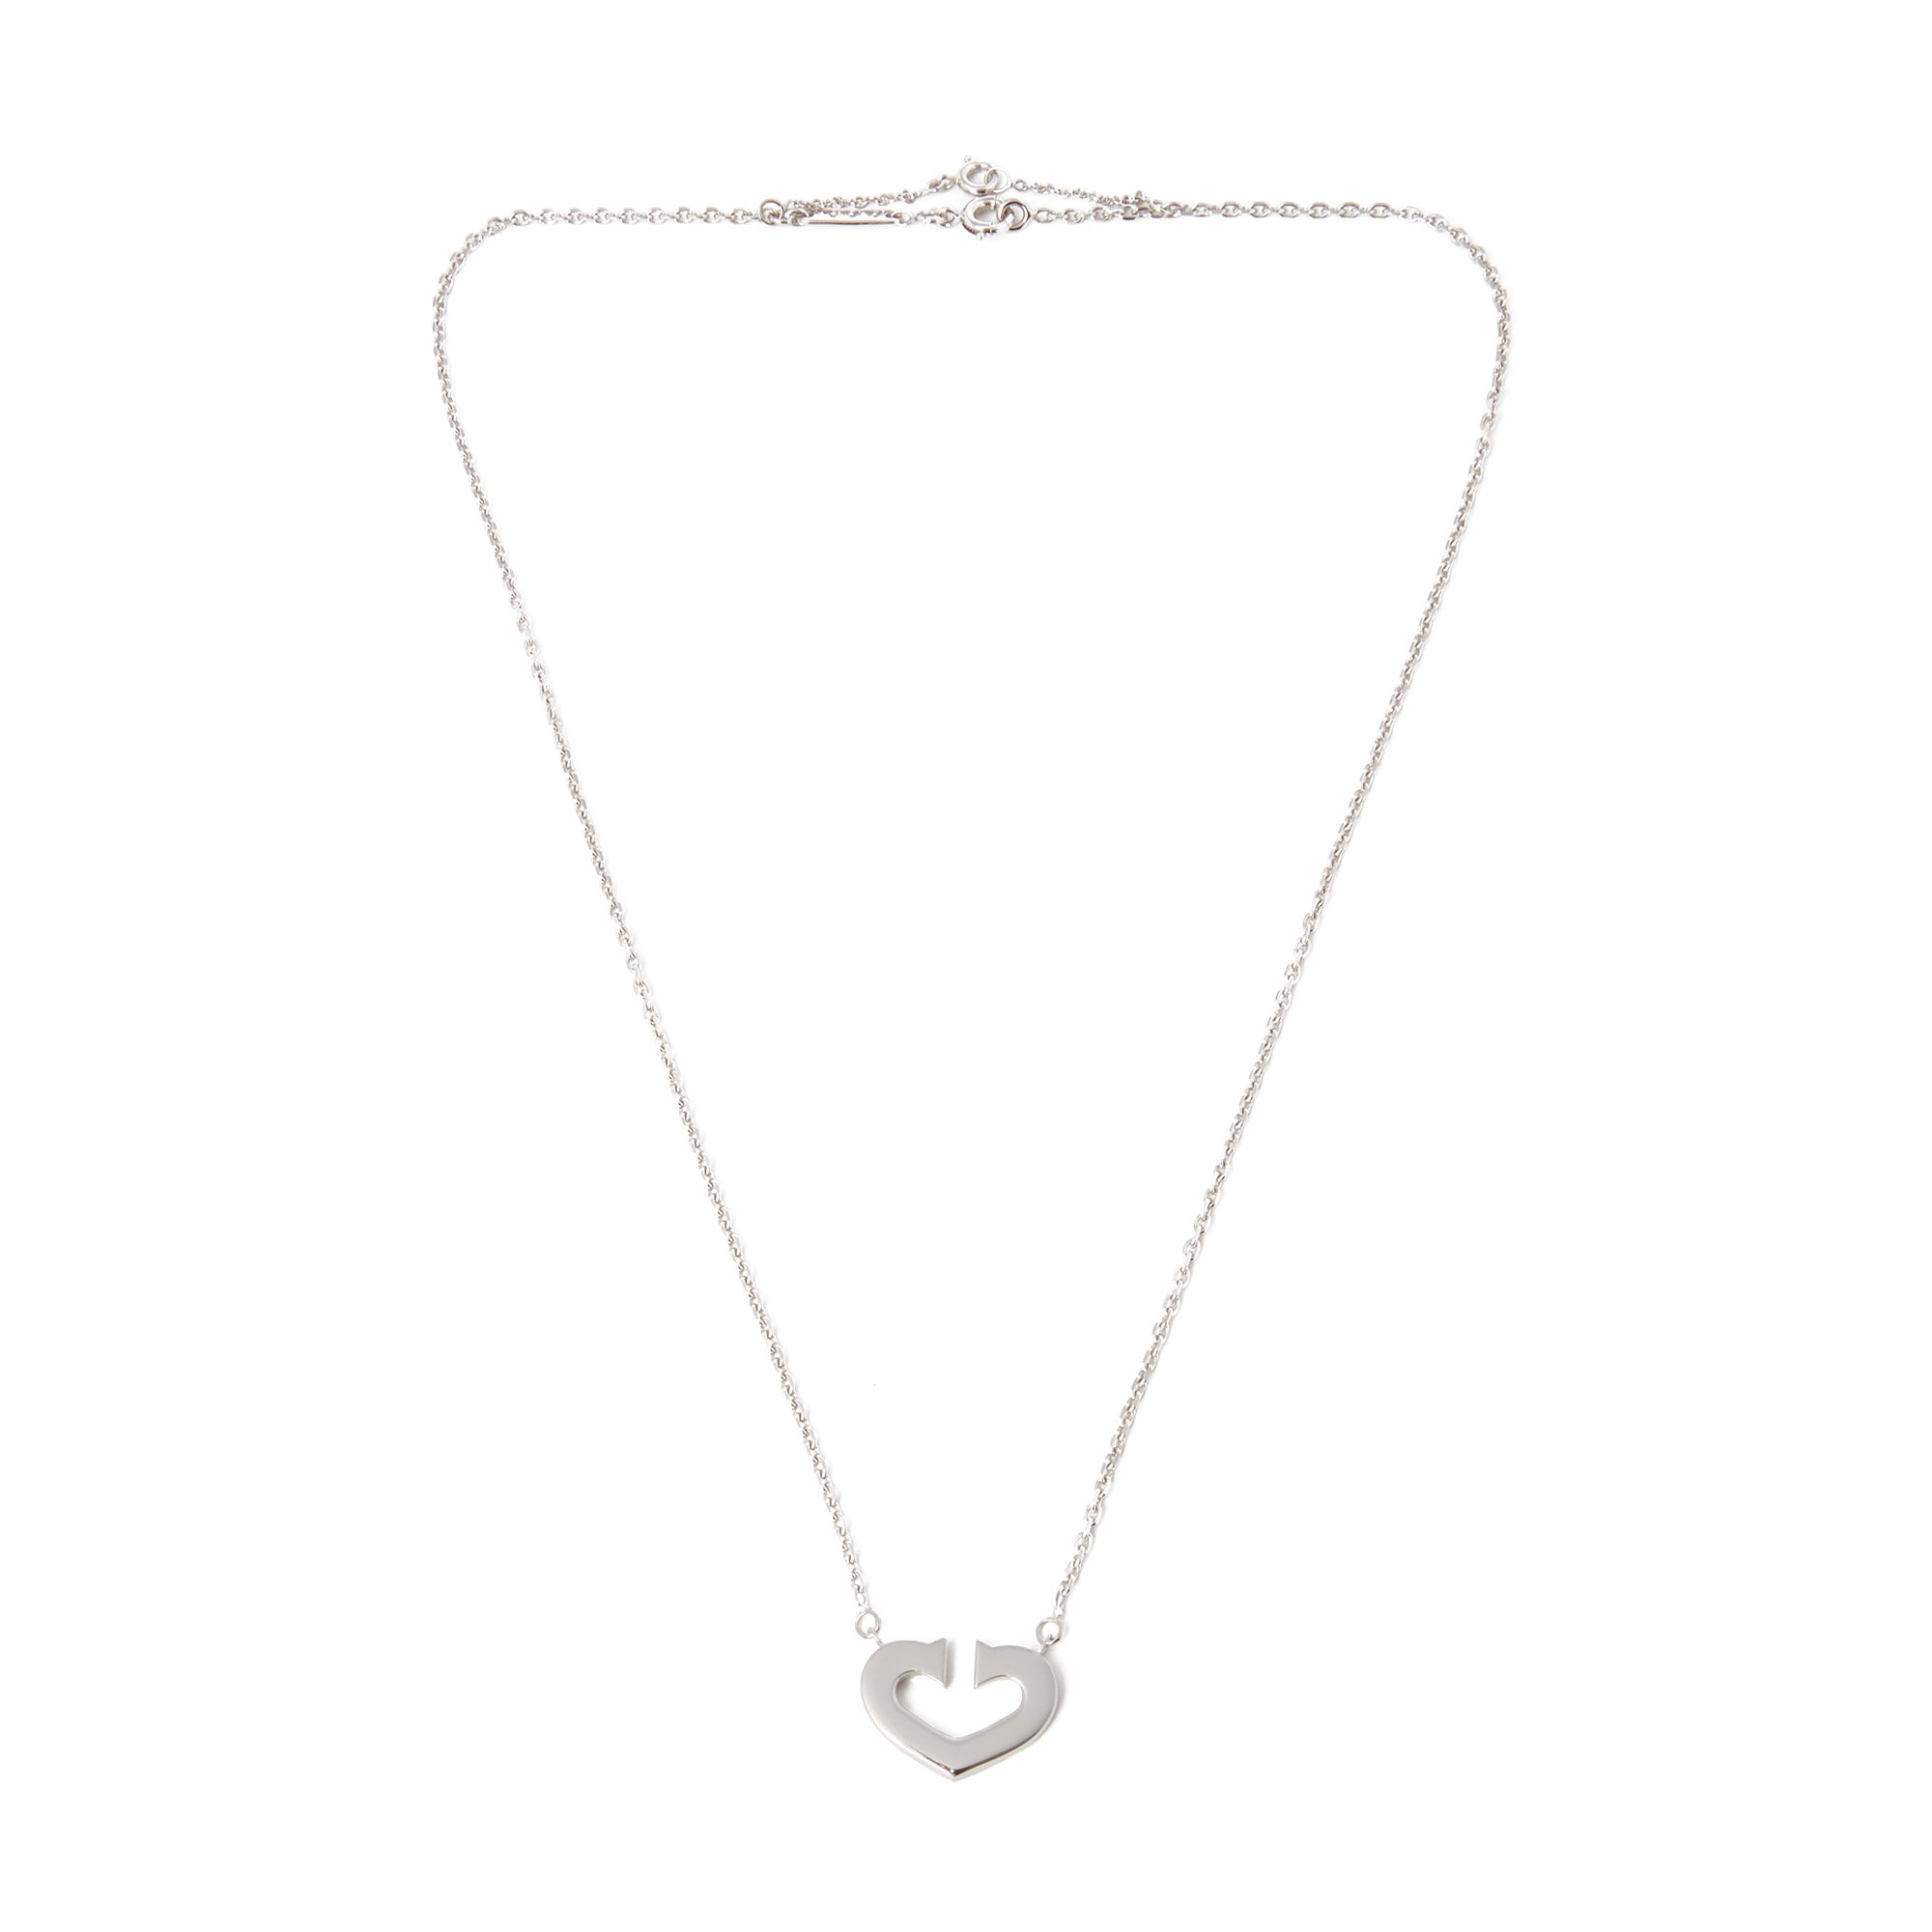 Cartier 18k White Gold Hearts and Symbols Necklet